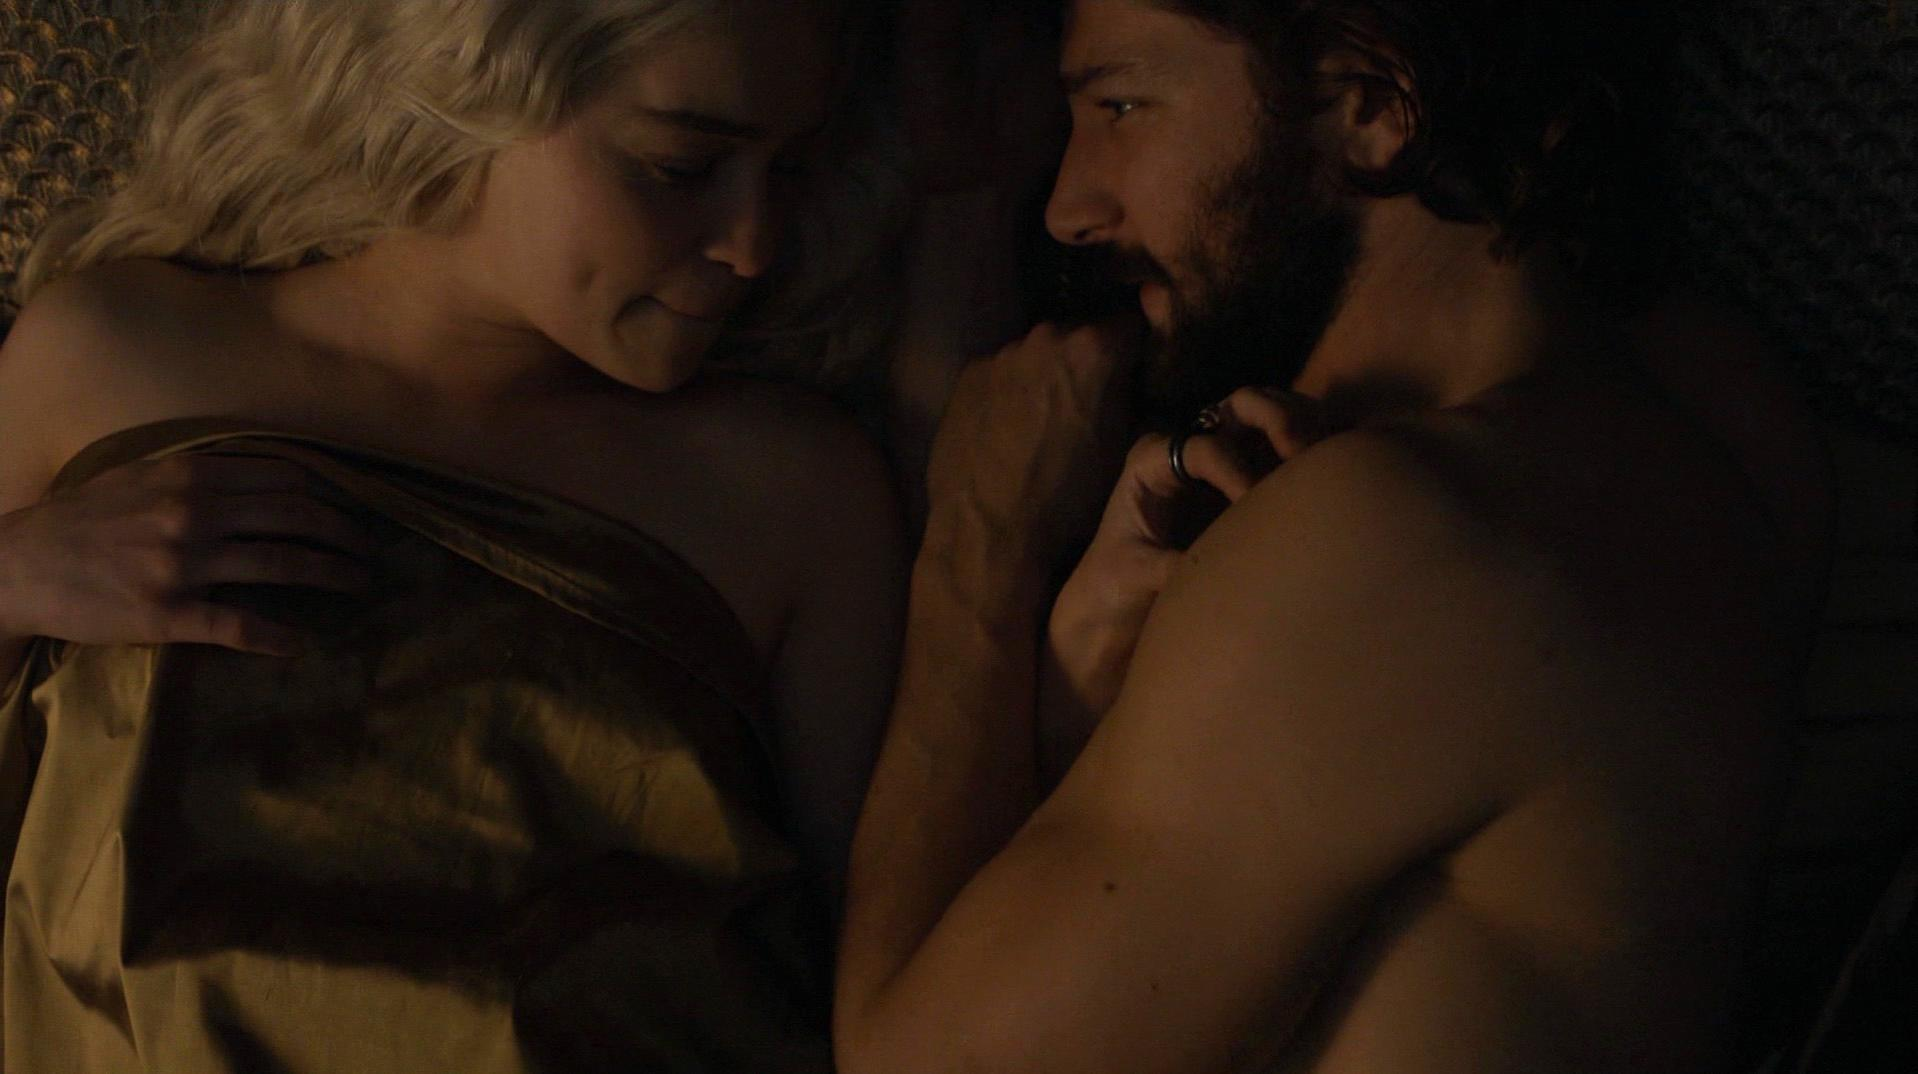 Game of thrones emilia clarke sex scene